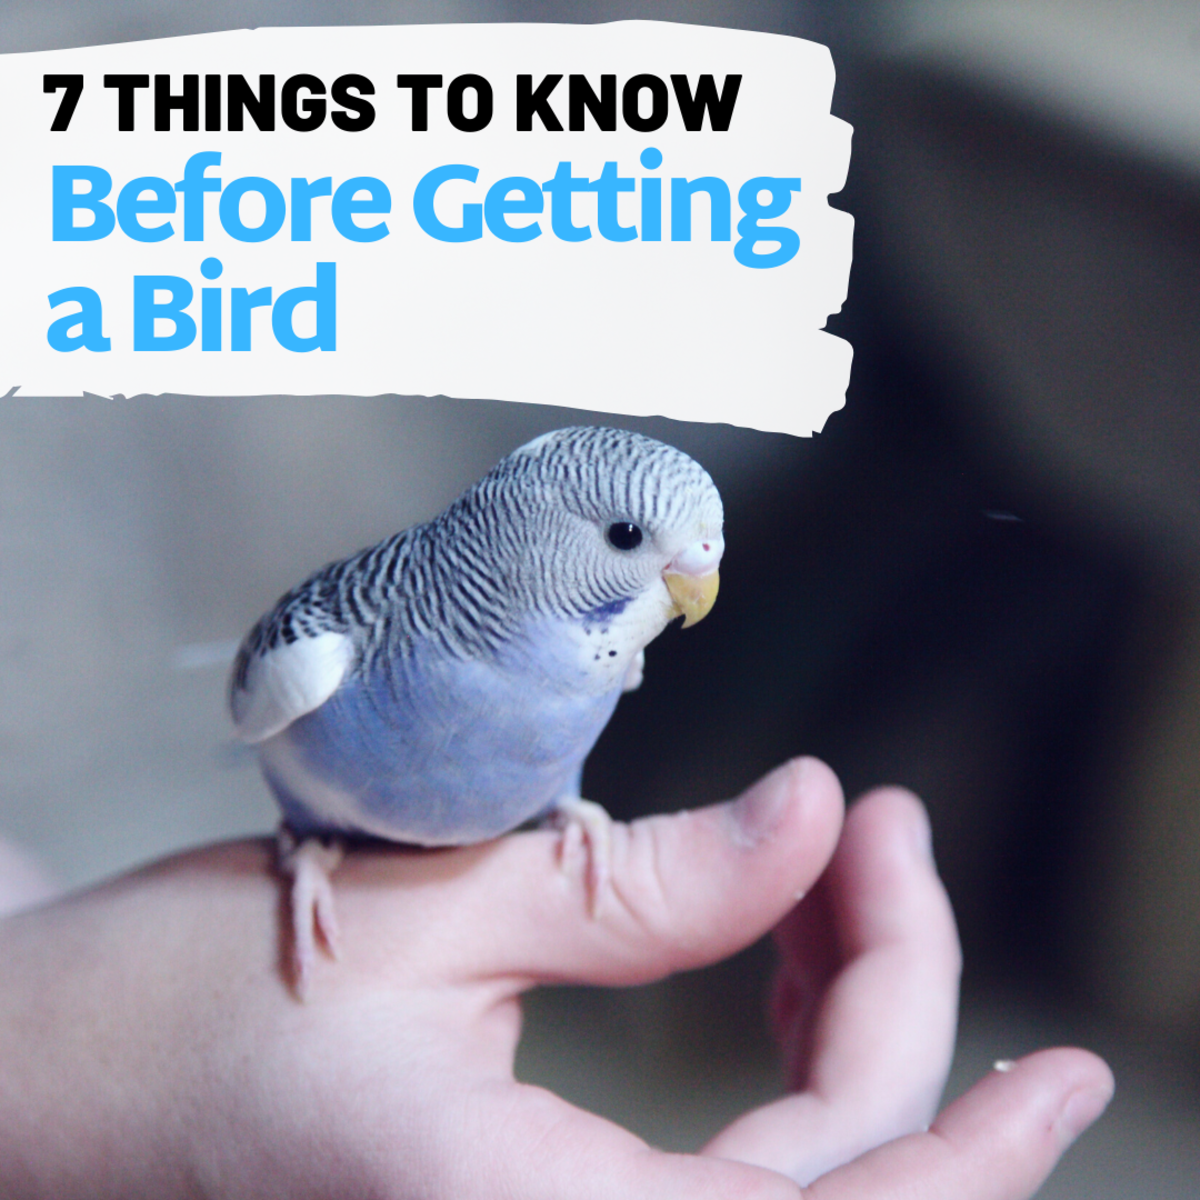 7 Things You Should Know Before Buying a Pet Bird